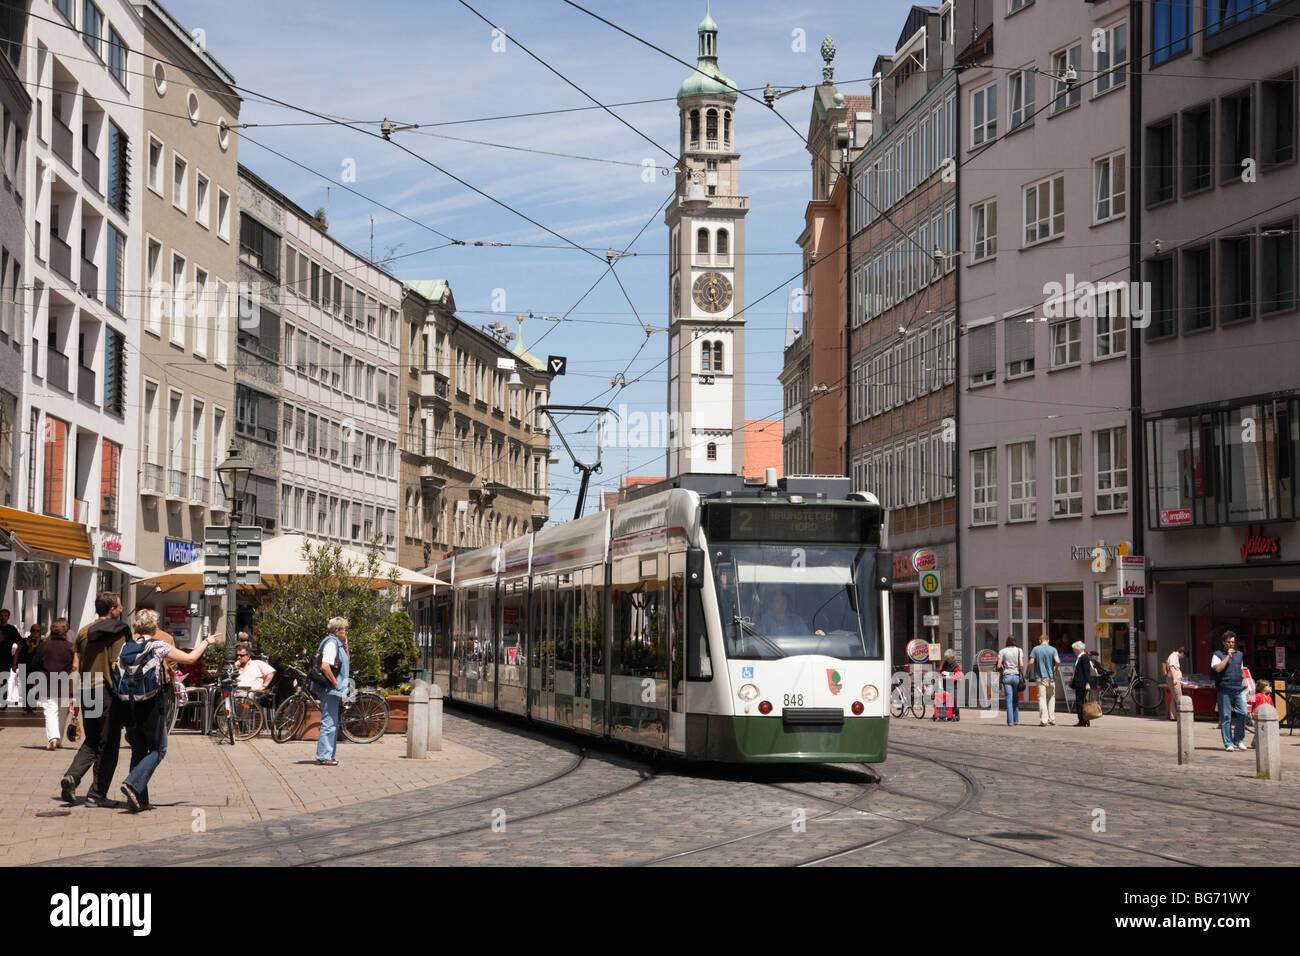 Tram on busy street in city centre with Perlachturm clock tower beyond in Maximilianstrasse, Augsburg, Bavaria, - Stock Image